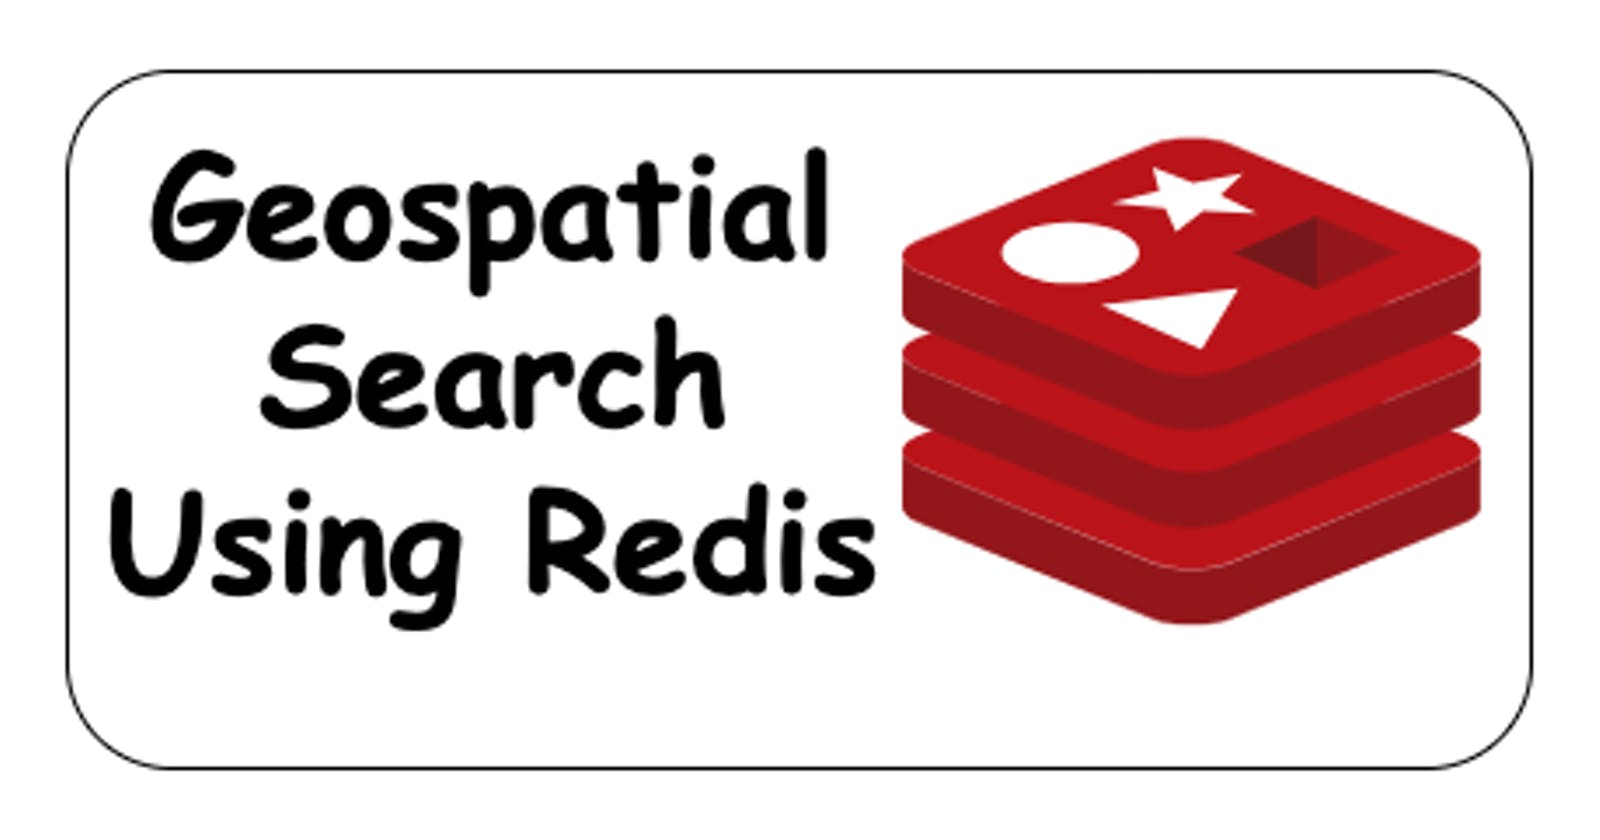 Find Nearby places using Redis Geospatial search